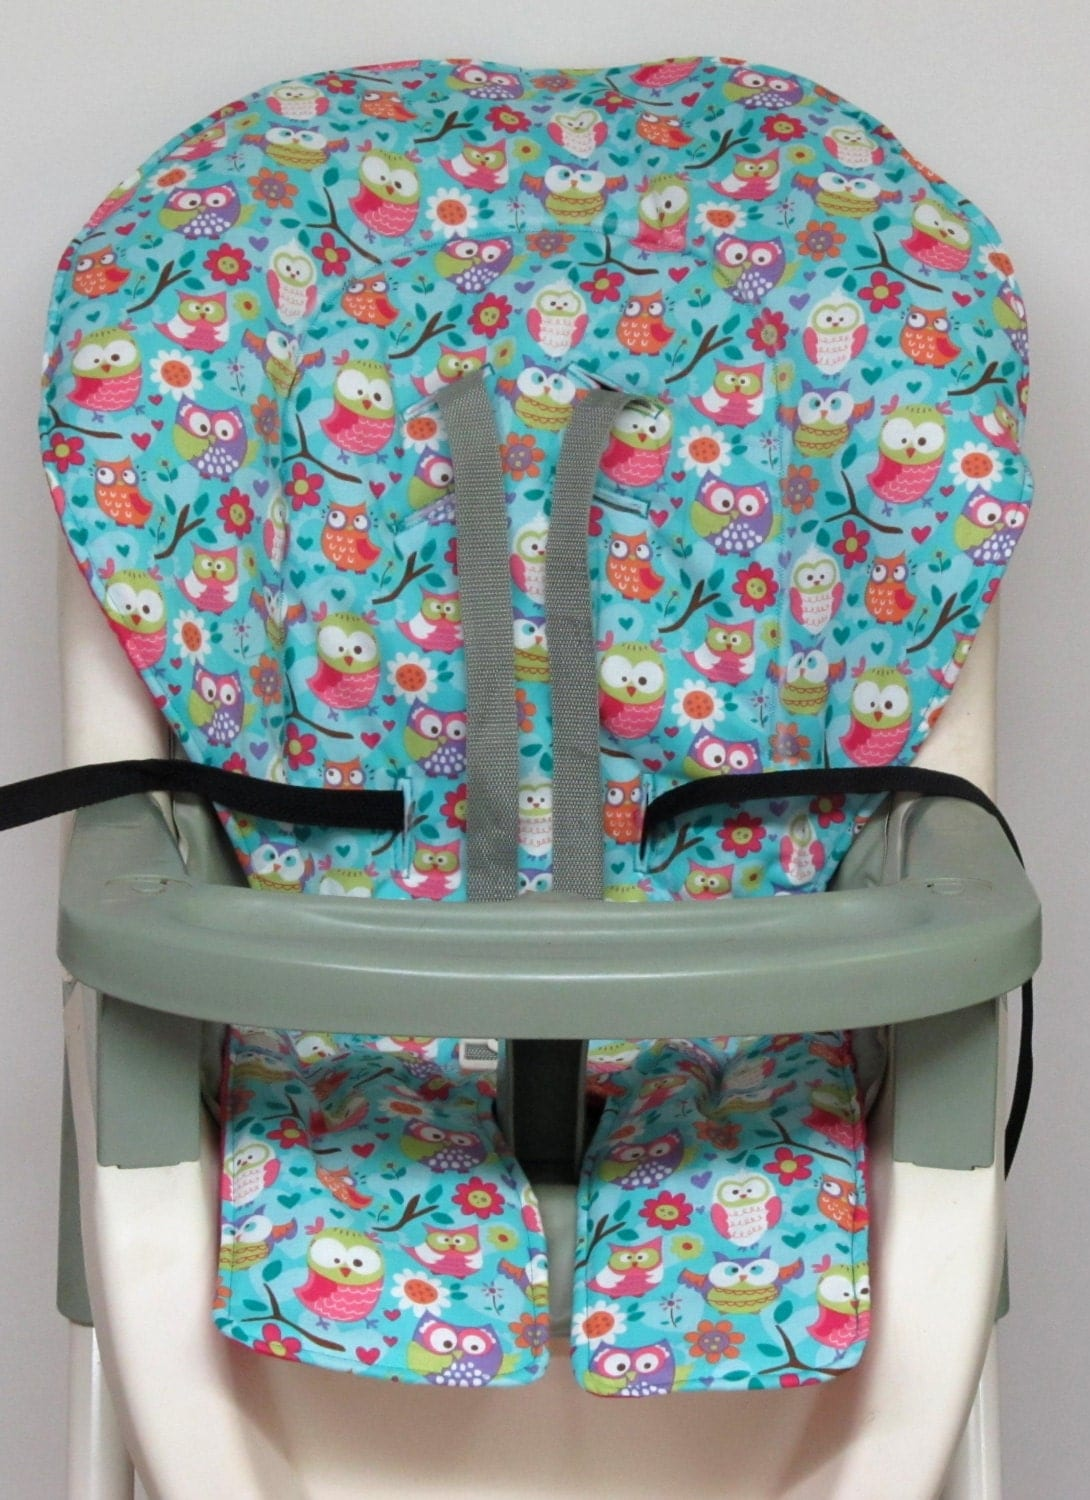 high chair cover graco pad replacement girly owls. Black Bedroom Furniture Sets. Home Design Ideas